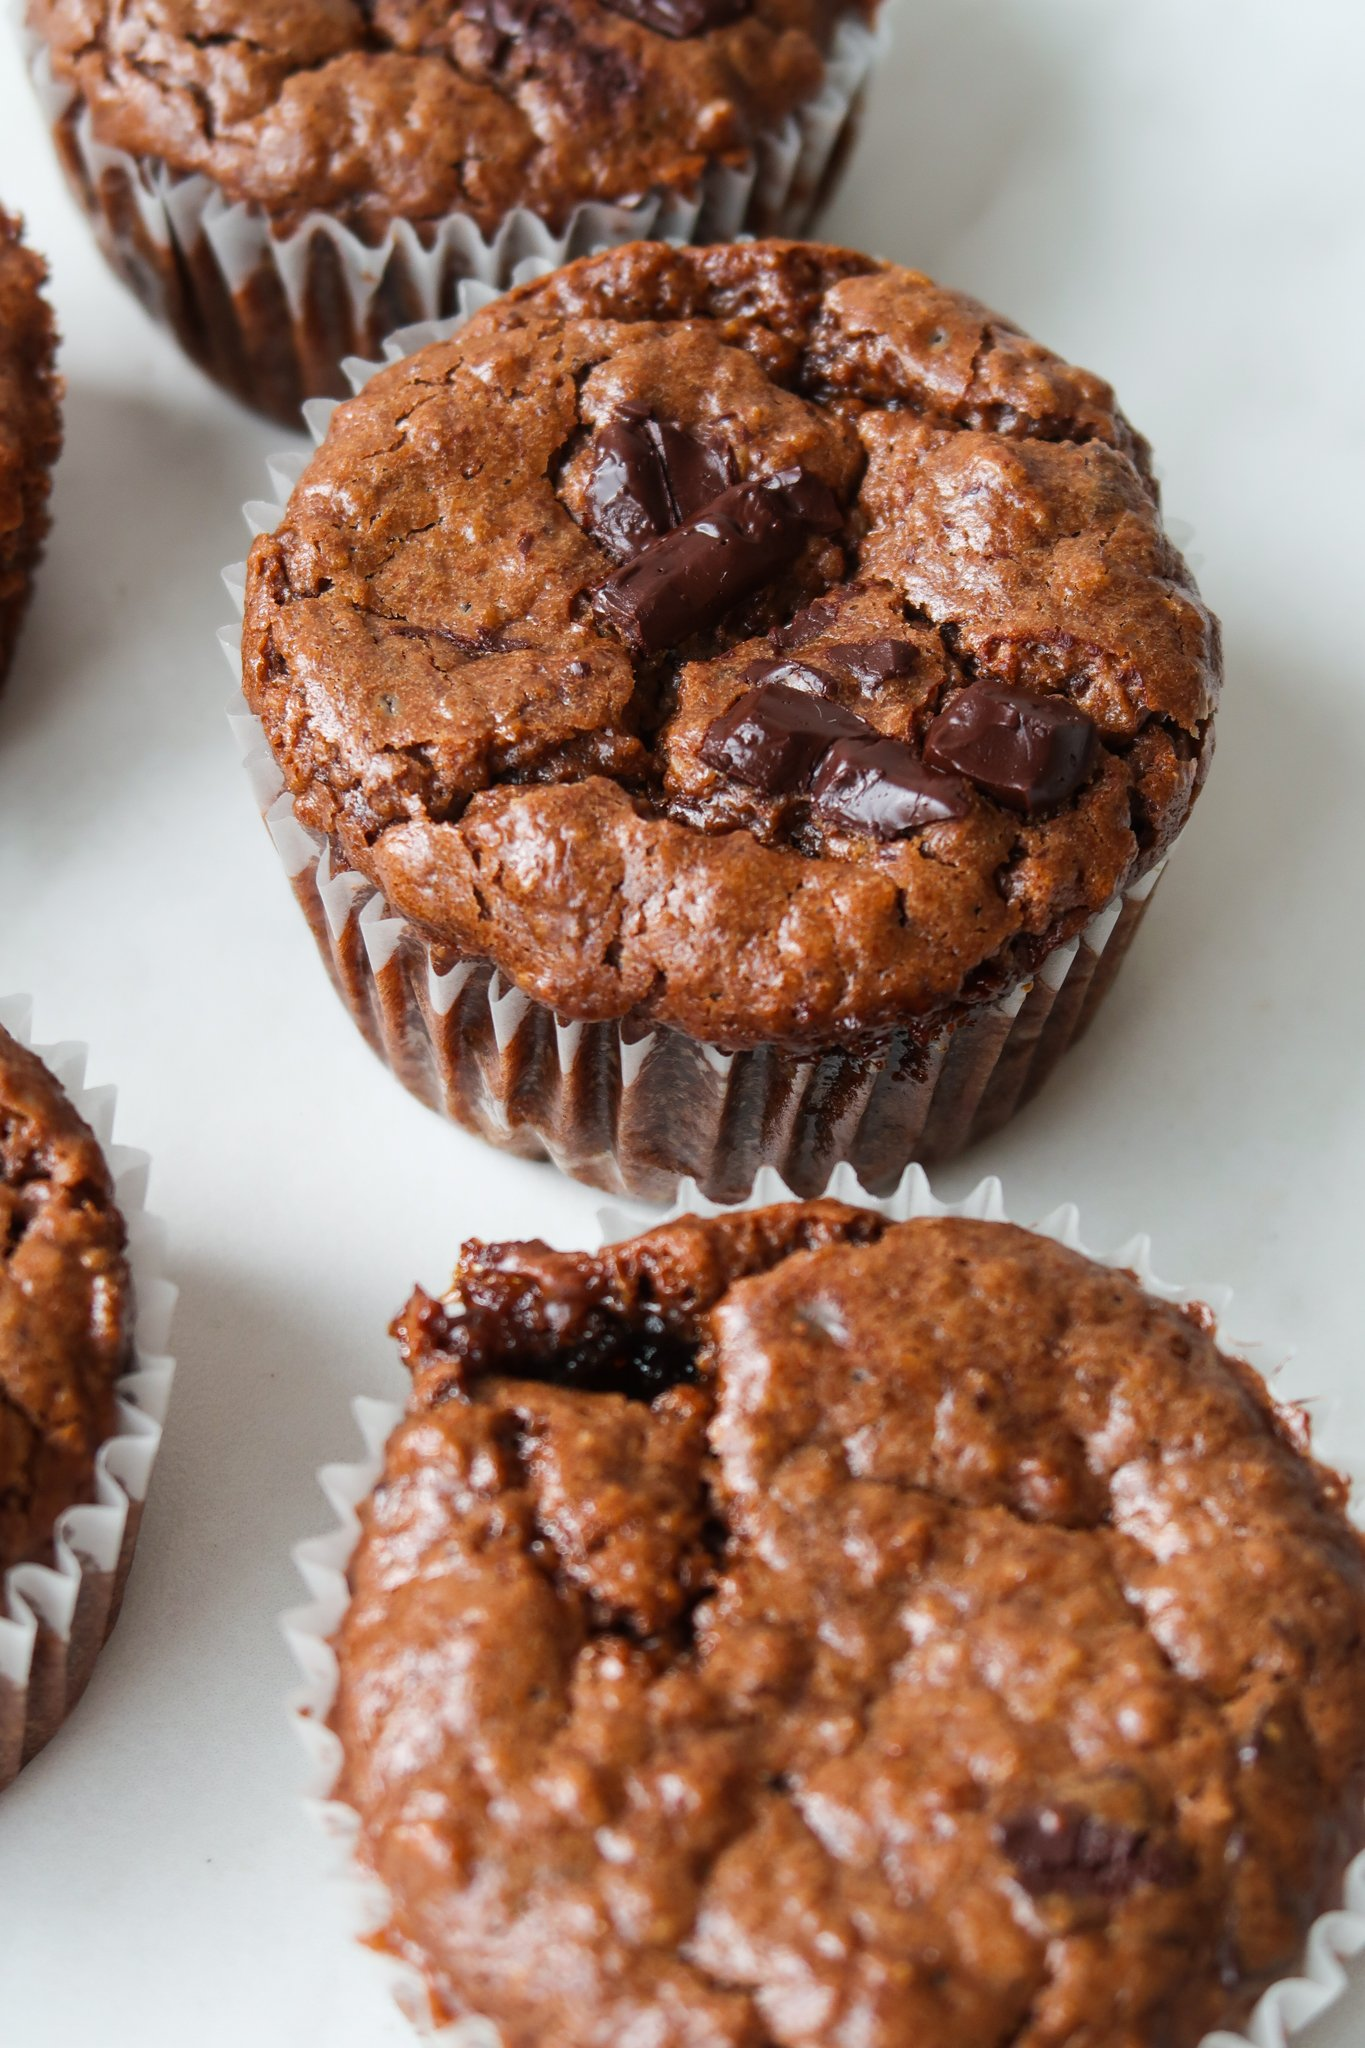 Learn how to make these delicious vegan oatmeal muffins with this easy flourless vegan muffin recipe without banana using almond butter, oats and coconut sugar!